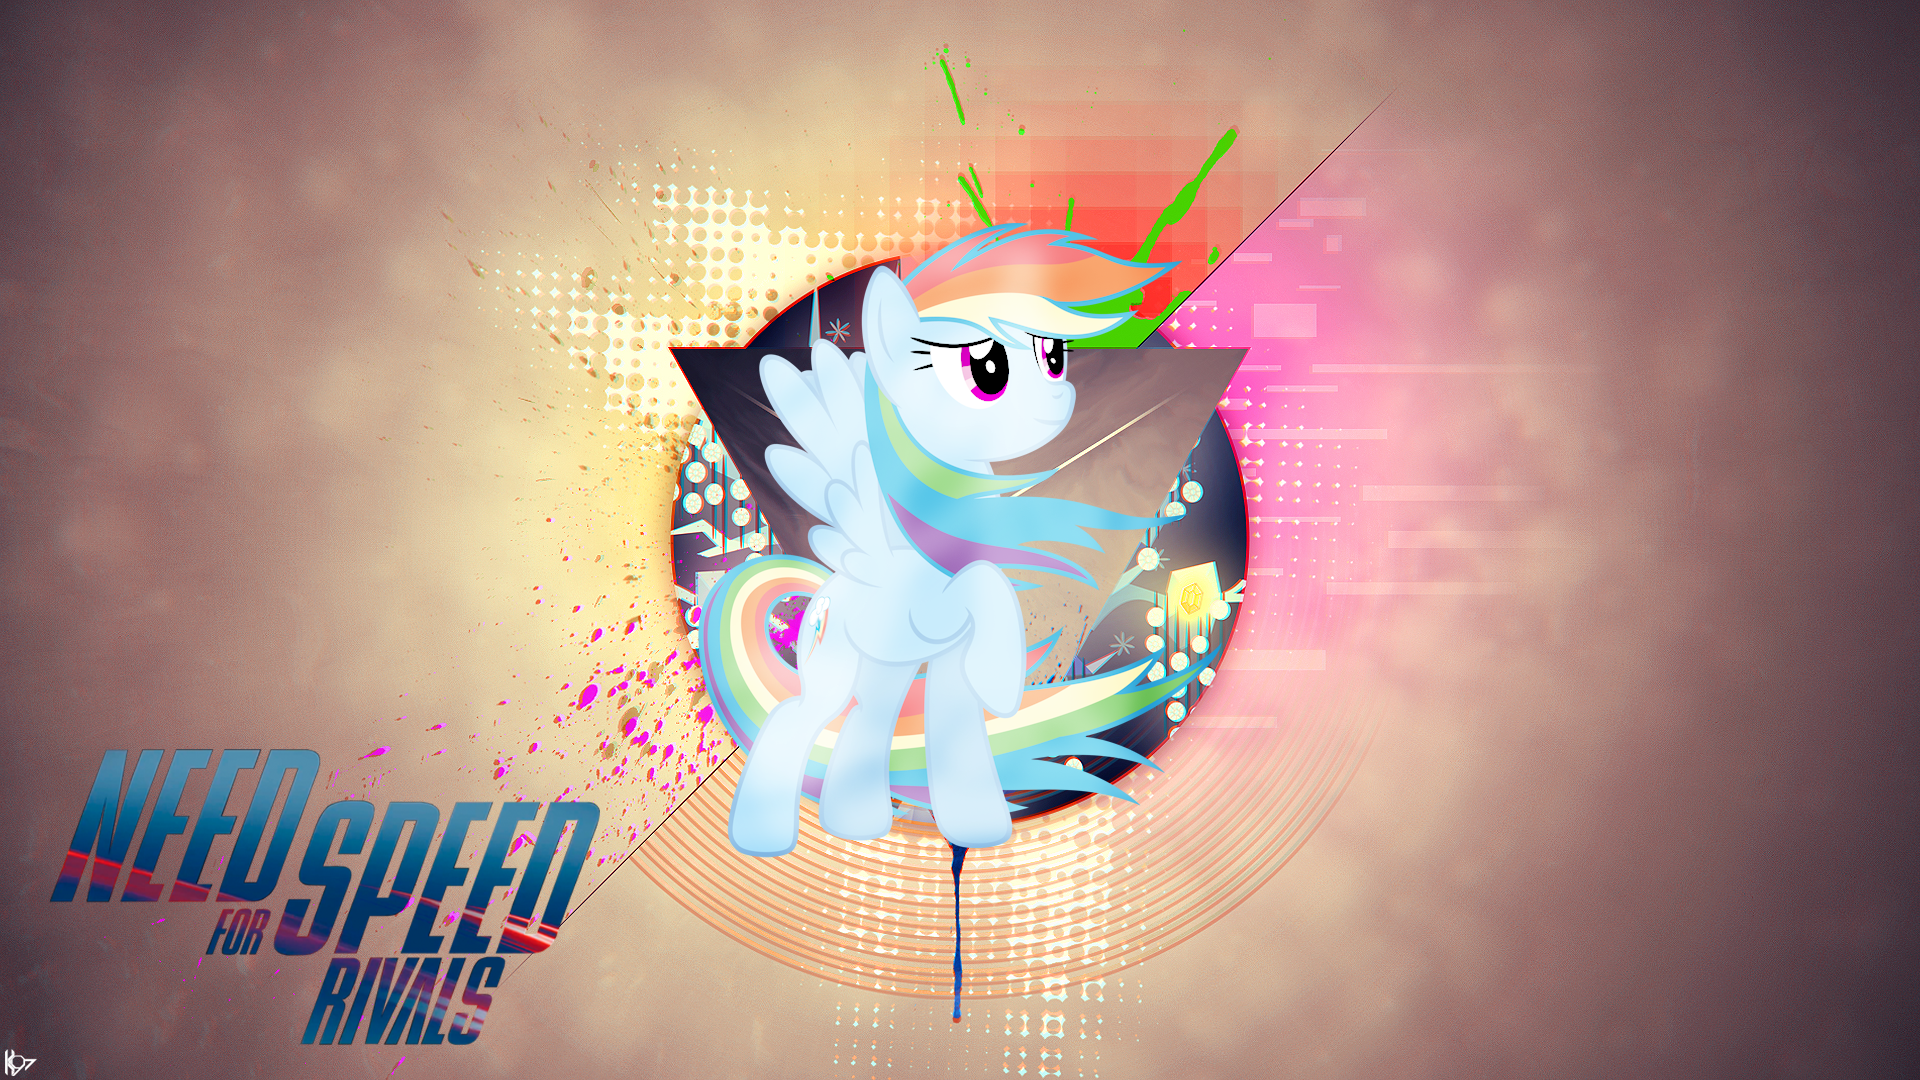 Need For Speed Rivals Rainbow Dash by JackShepardN7, Karl97, Vaux111 and xPesifeindx